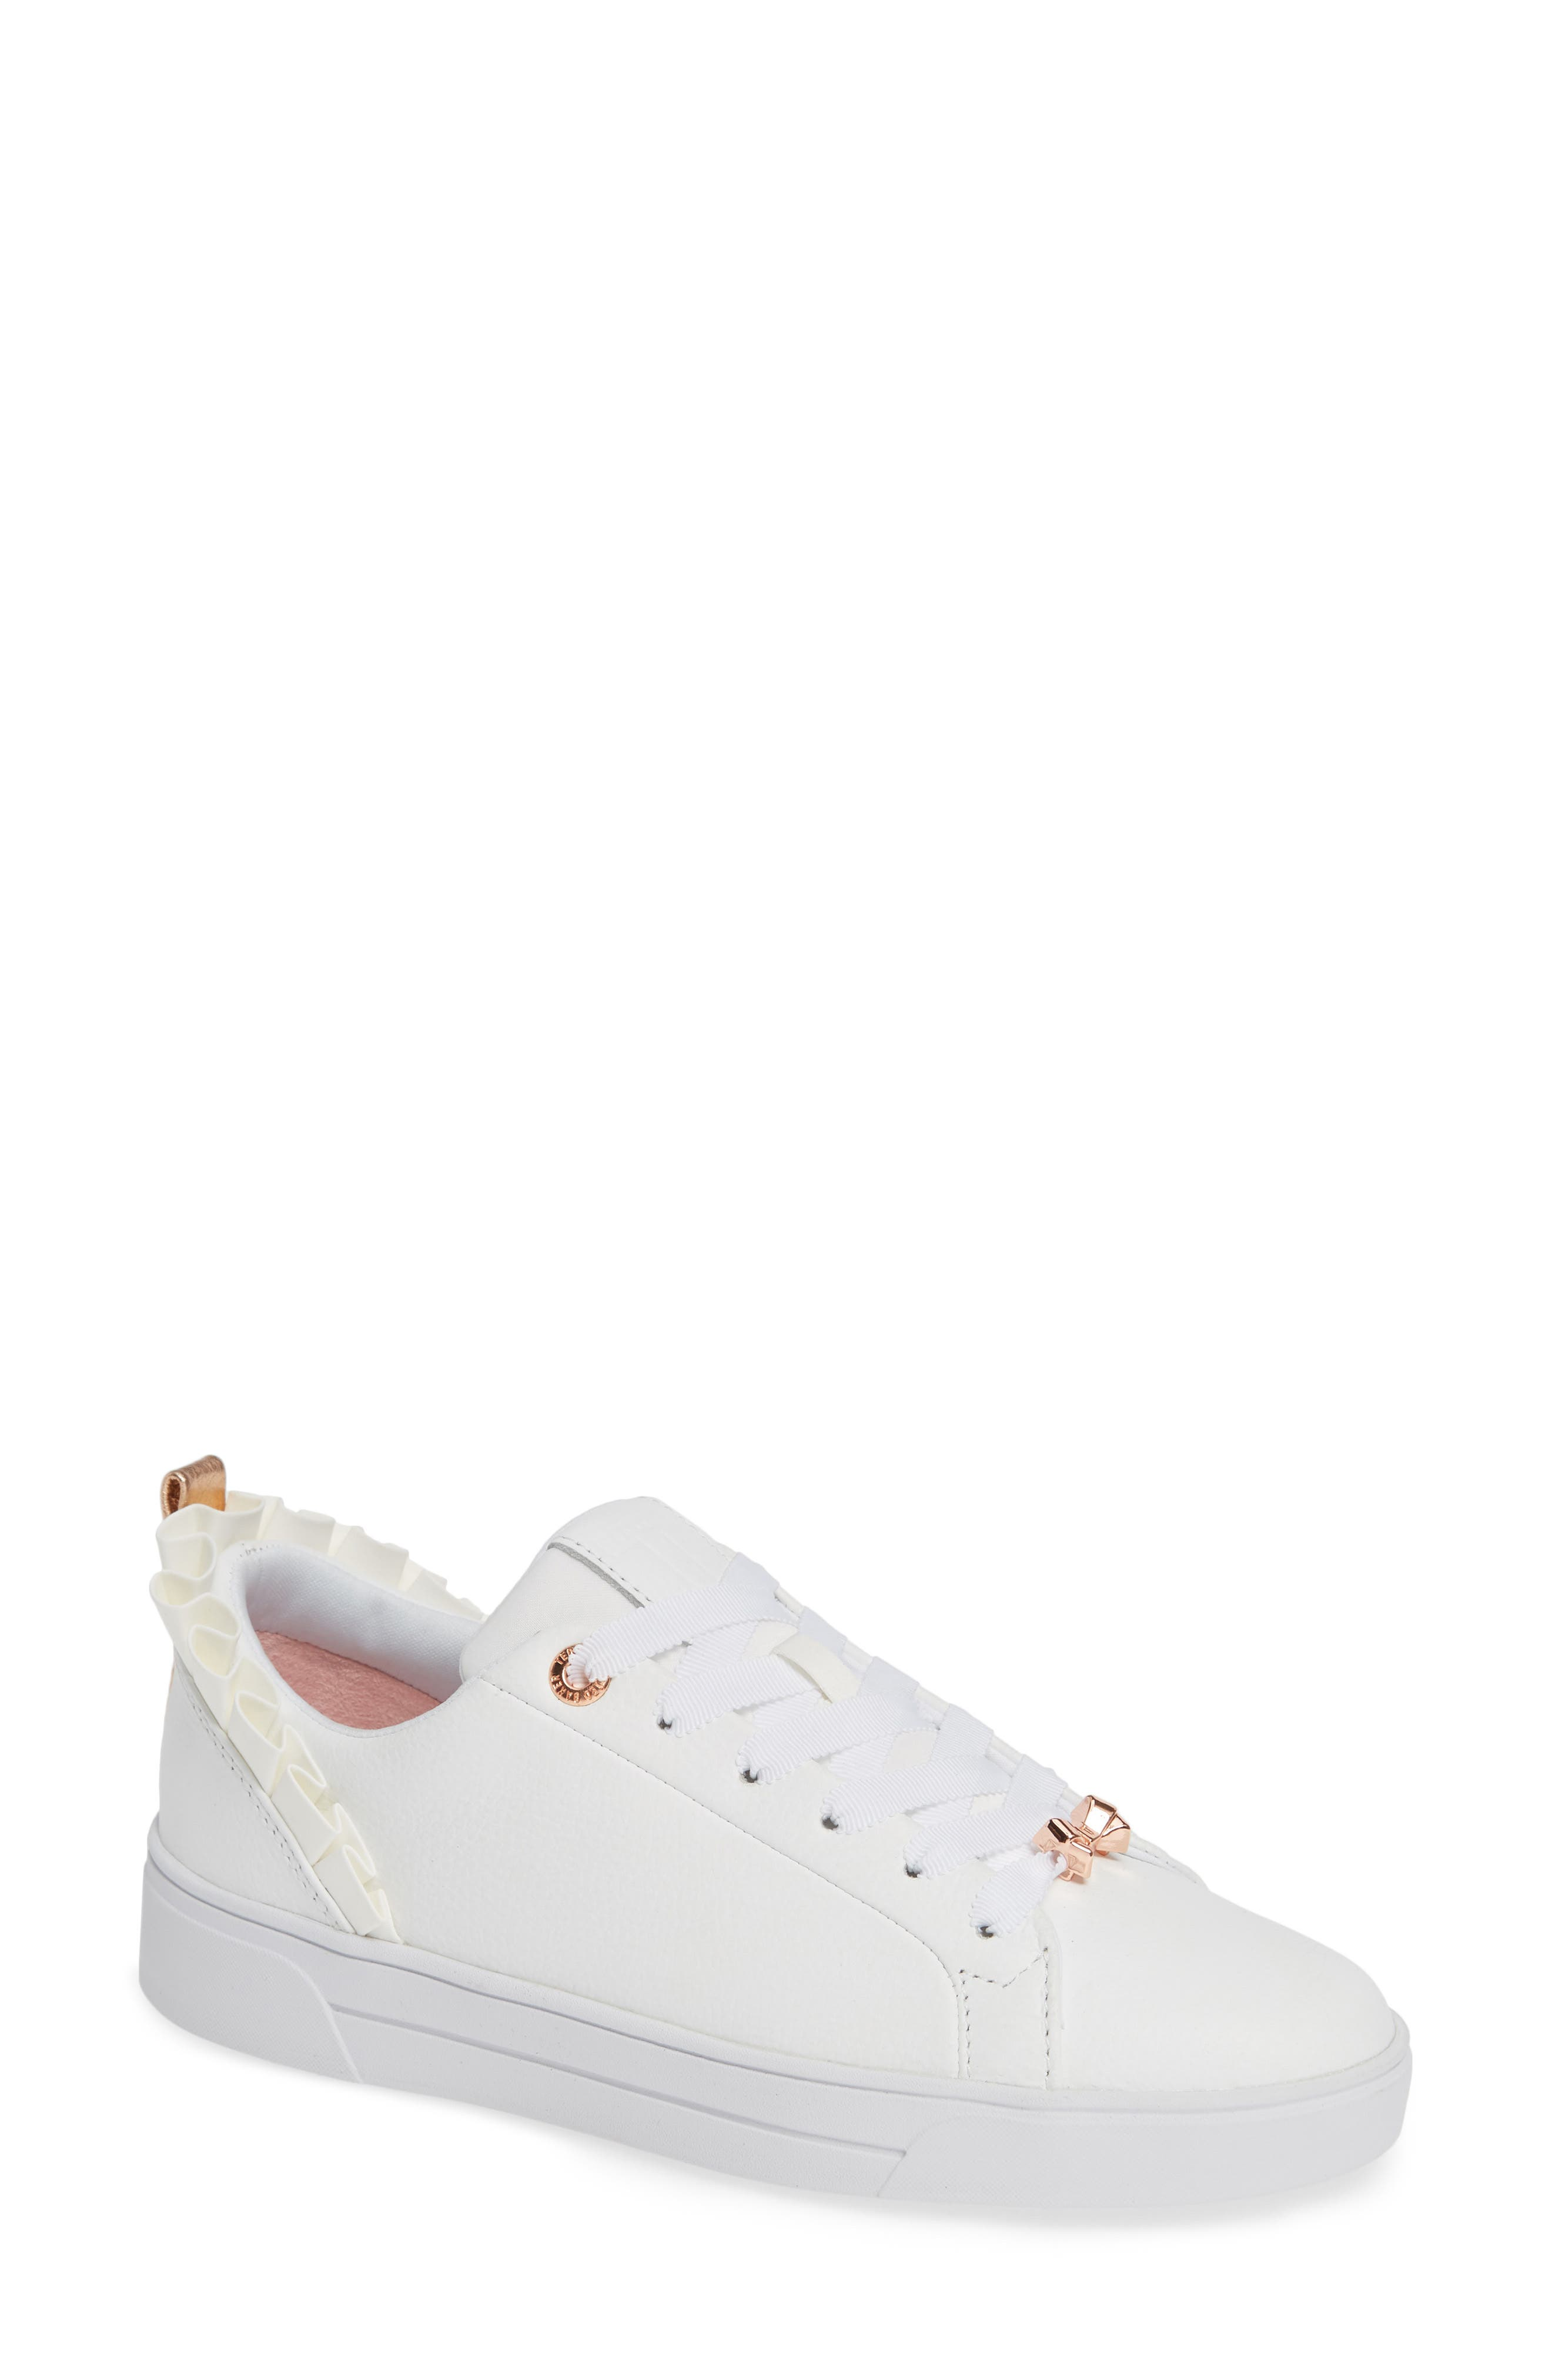 Astrina Sneaker,                         Main,                         color, WHITE LEATHER